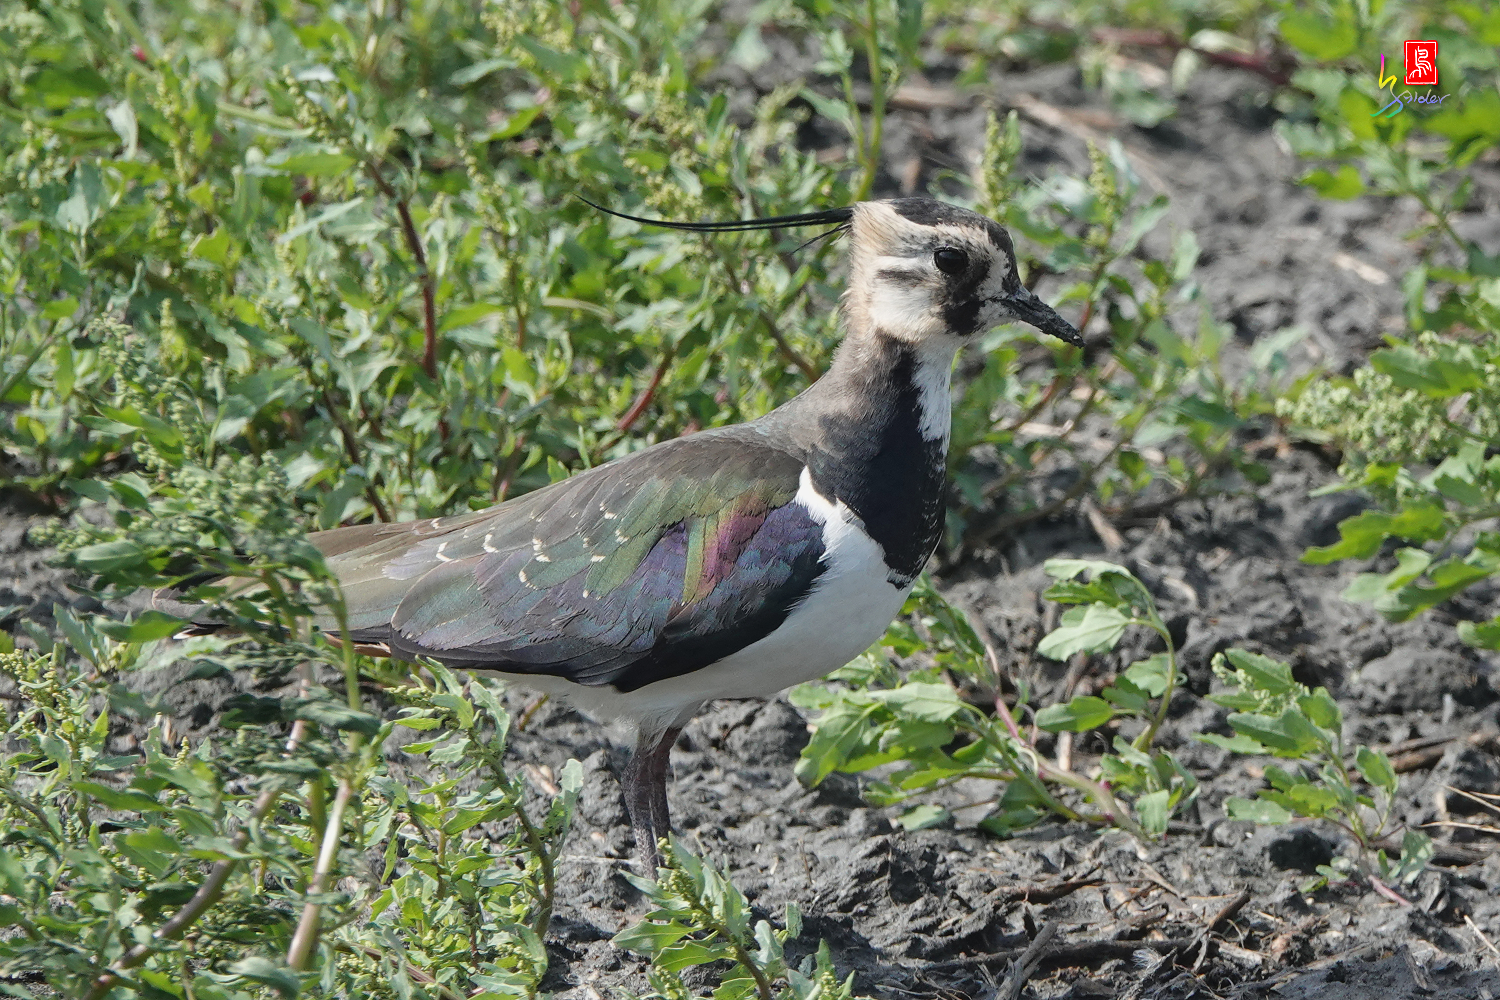 Nprthern_Lapwing08733